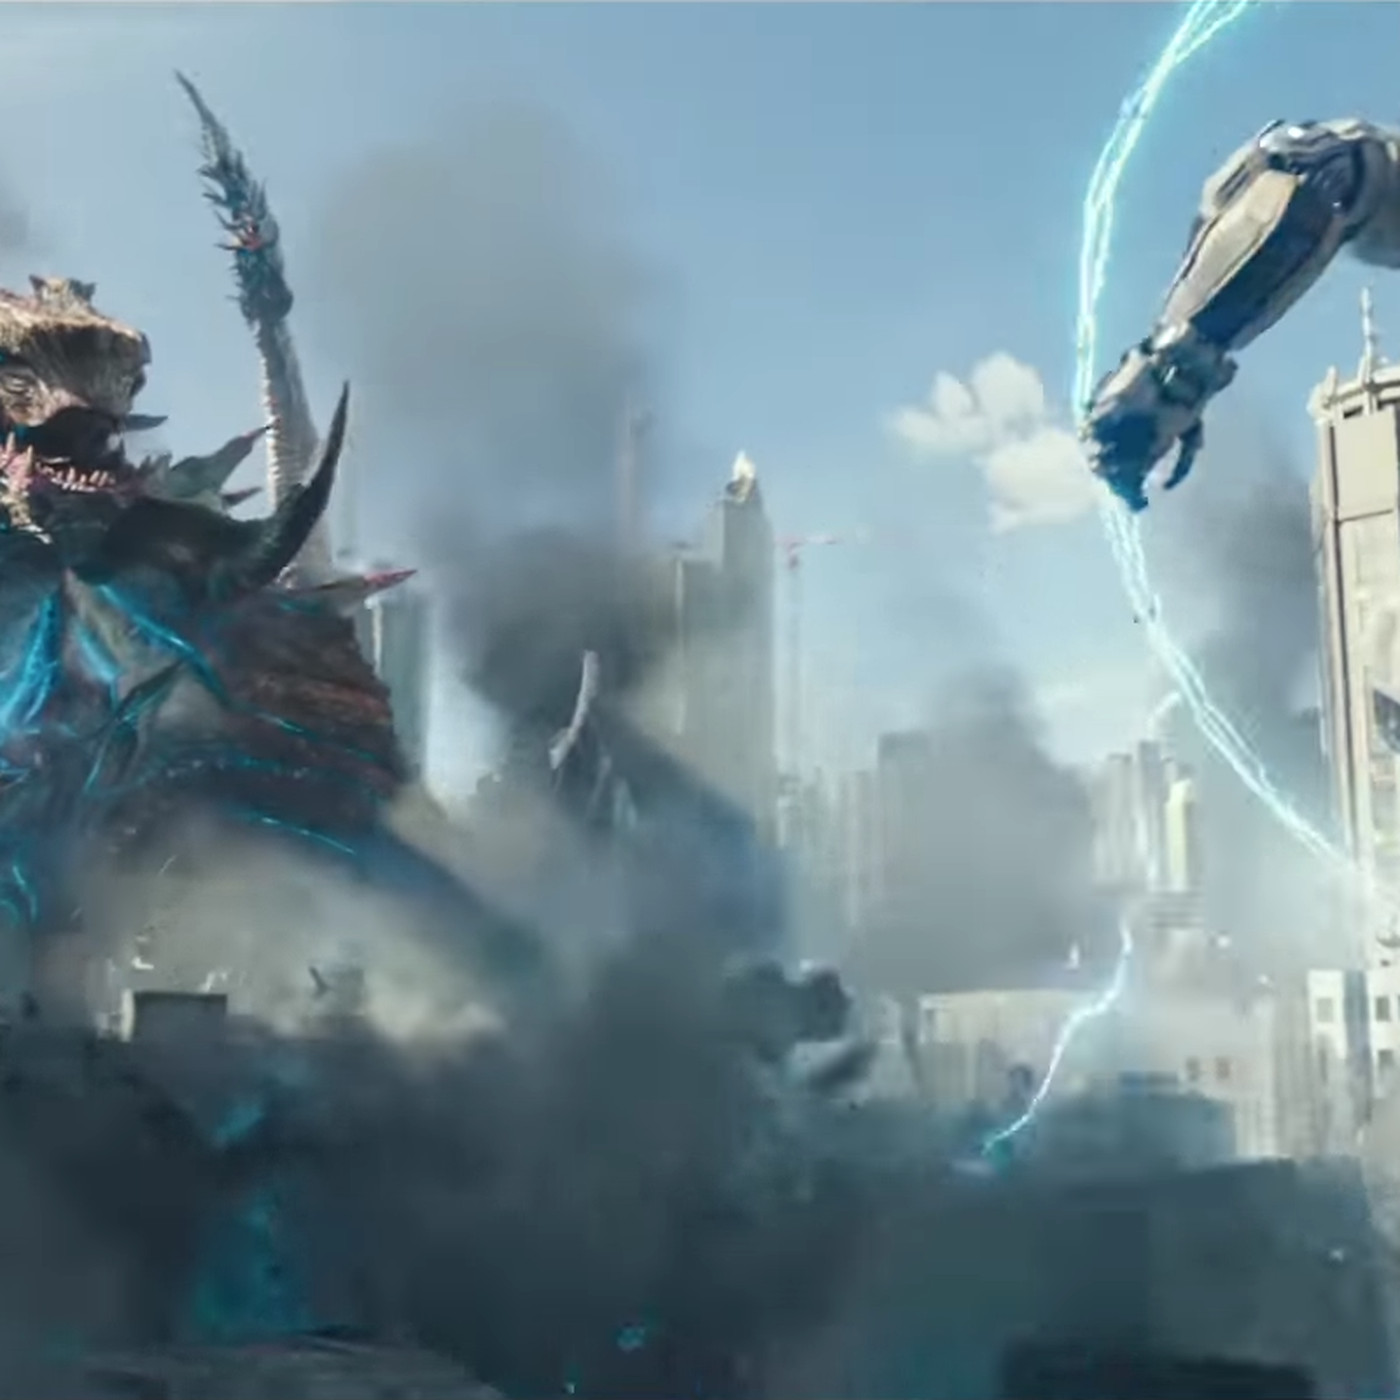 Pacific Rim Uprising S New Trailer Brings With It A Menacing Monster